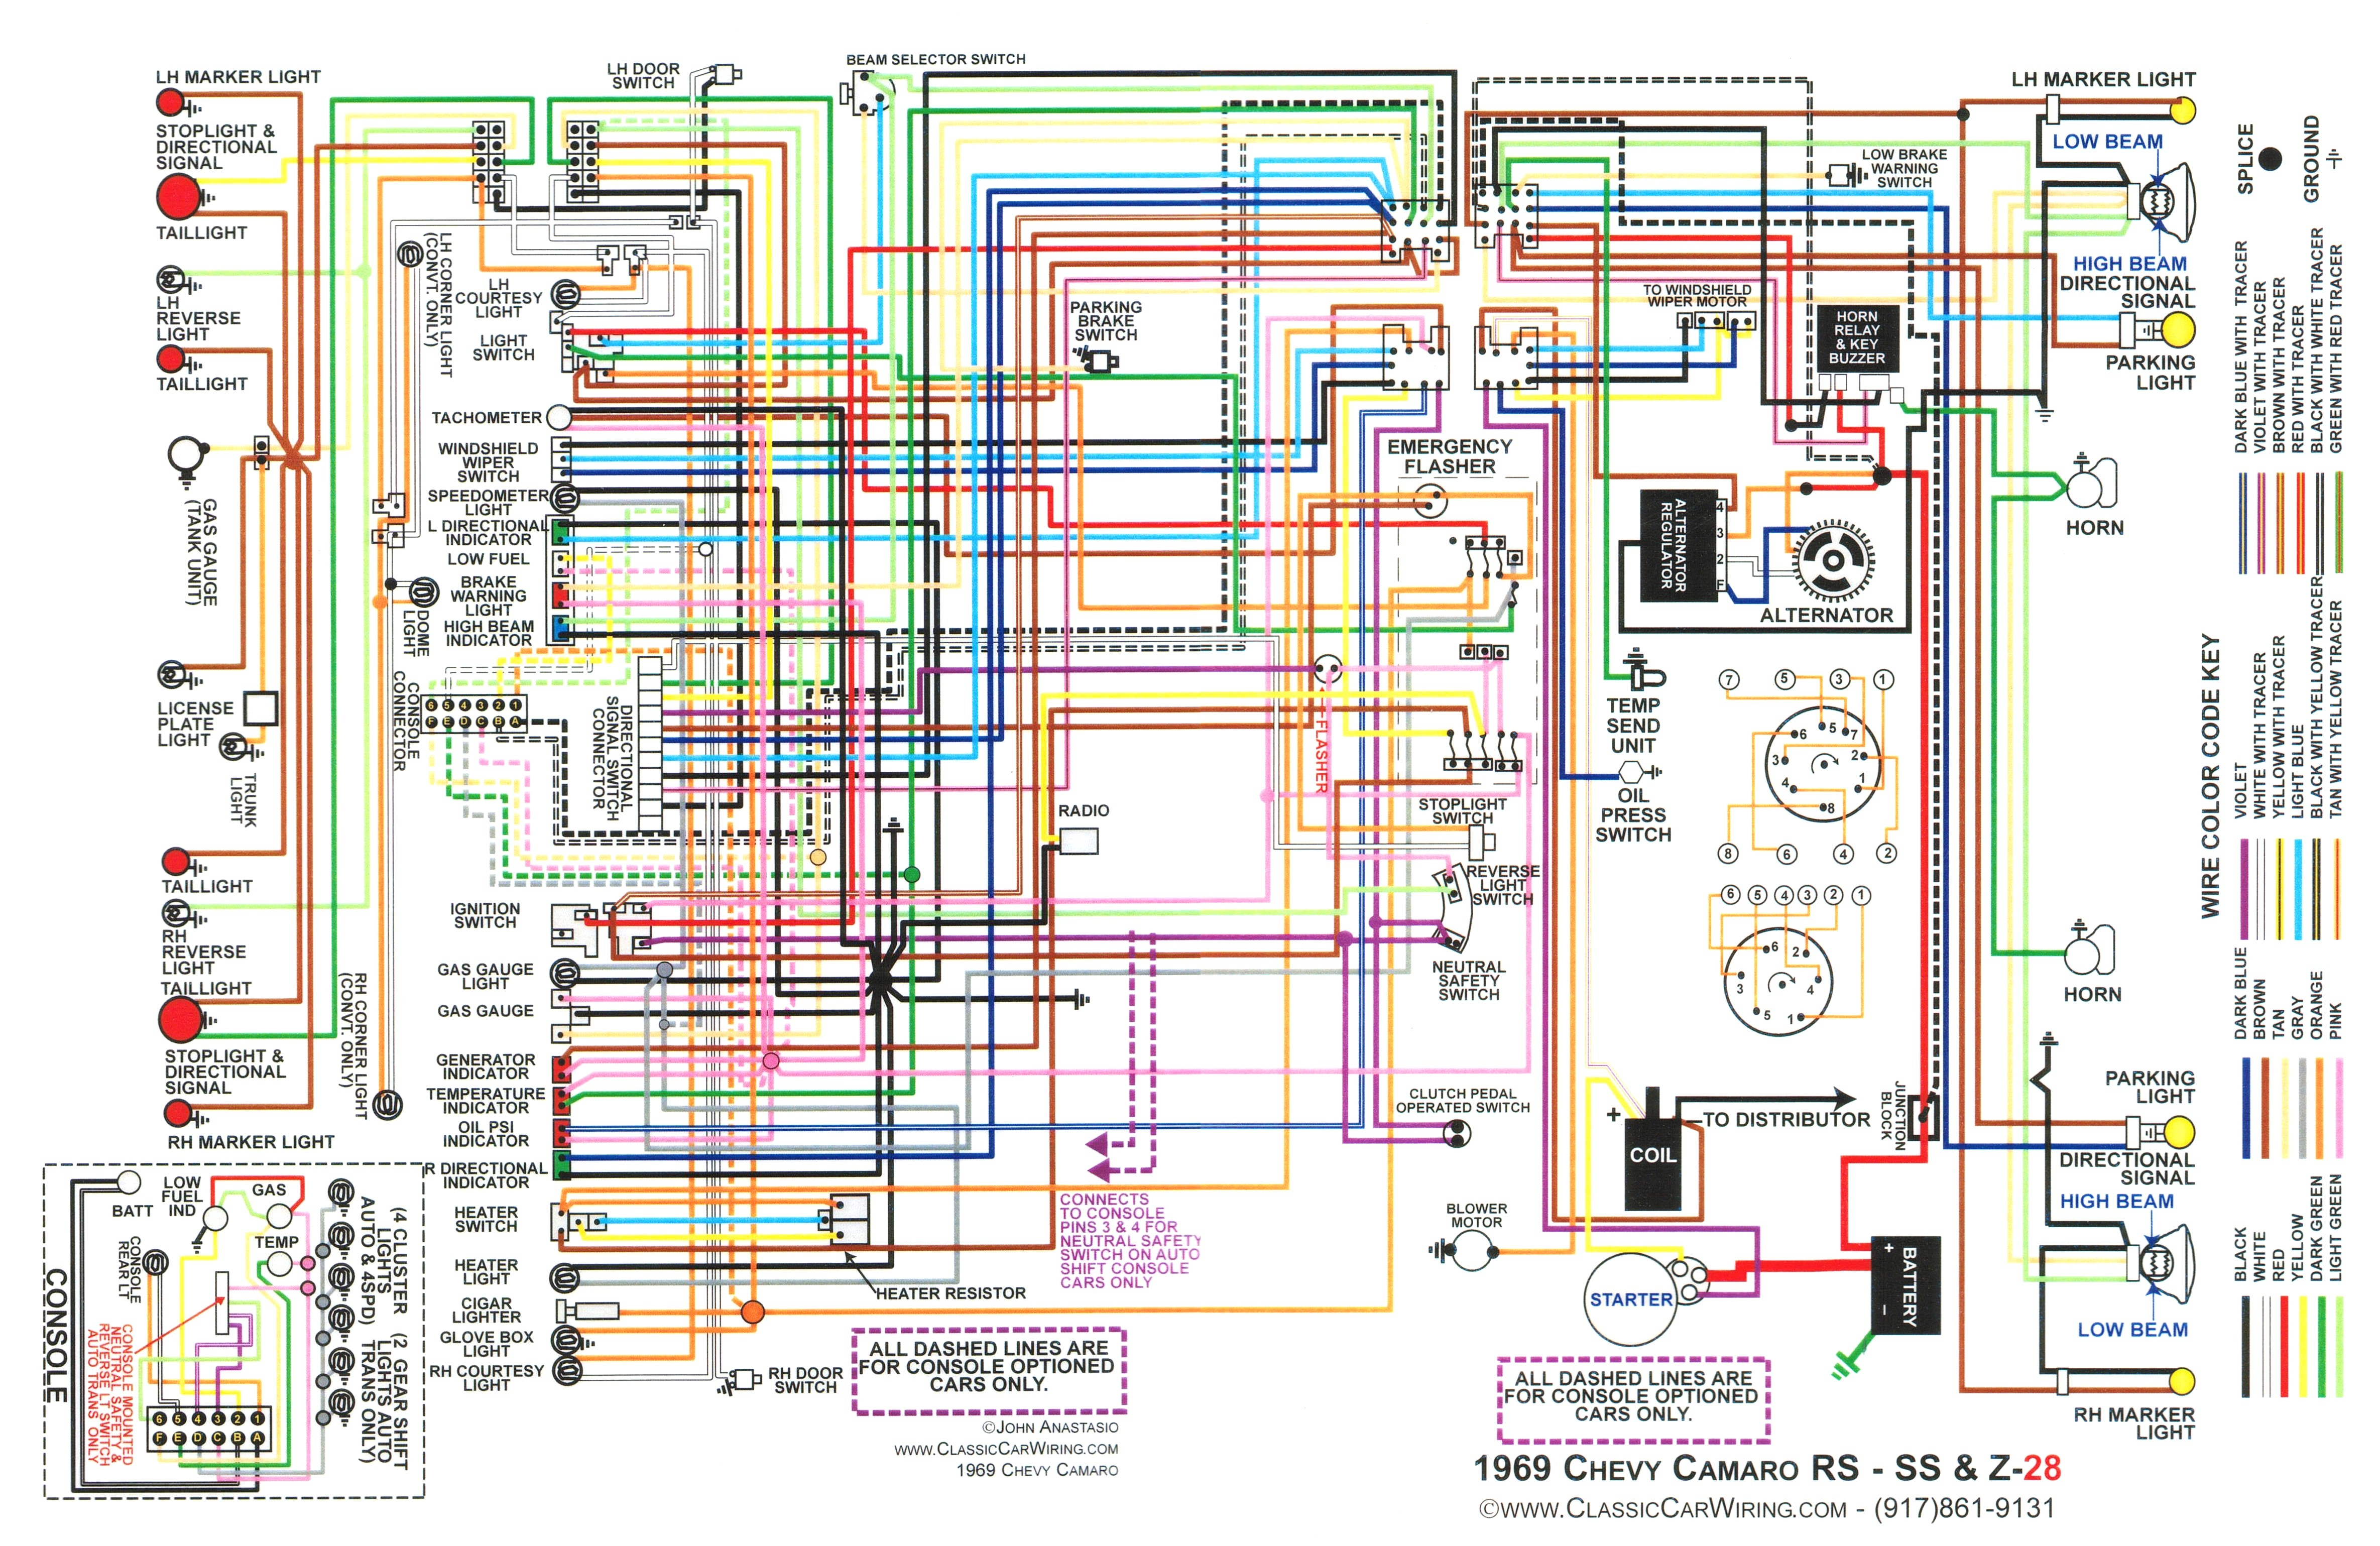 1967 firebird fuse box wiring diagram free download - wiring diagram  hup-warehouse-b - hup-warehouse-b.pmov2019.it  pmov2019.it